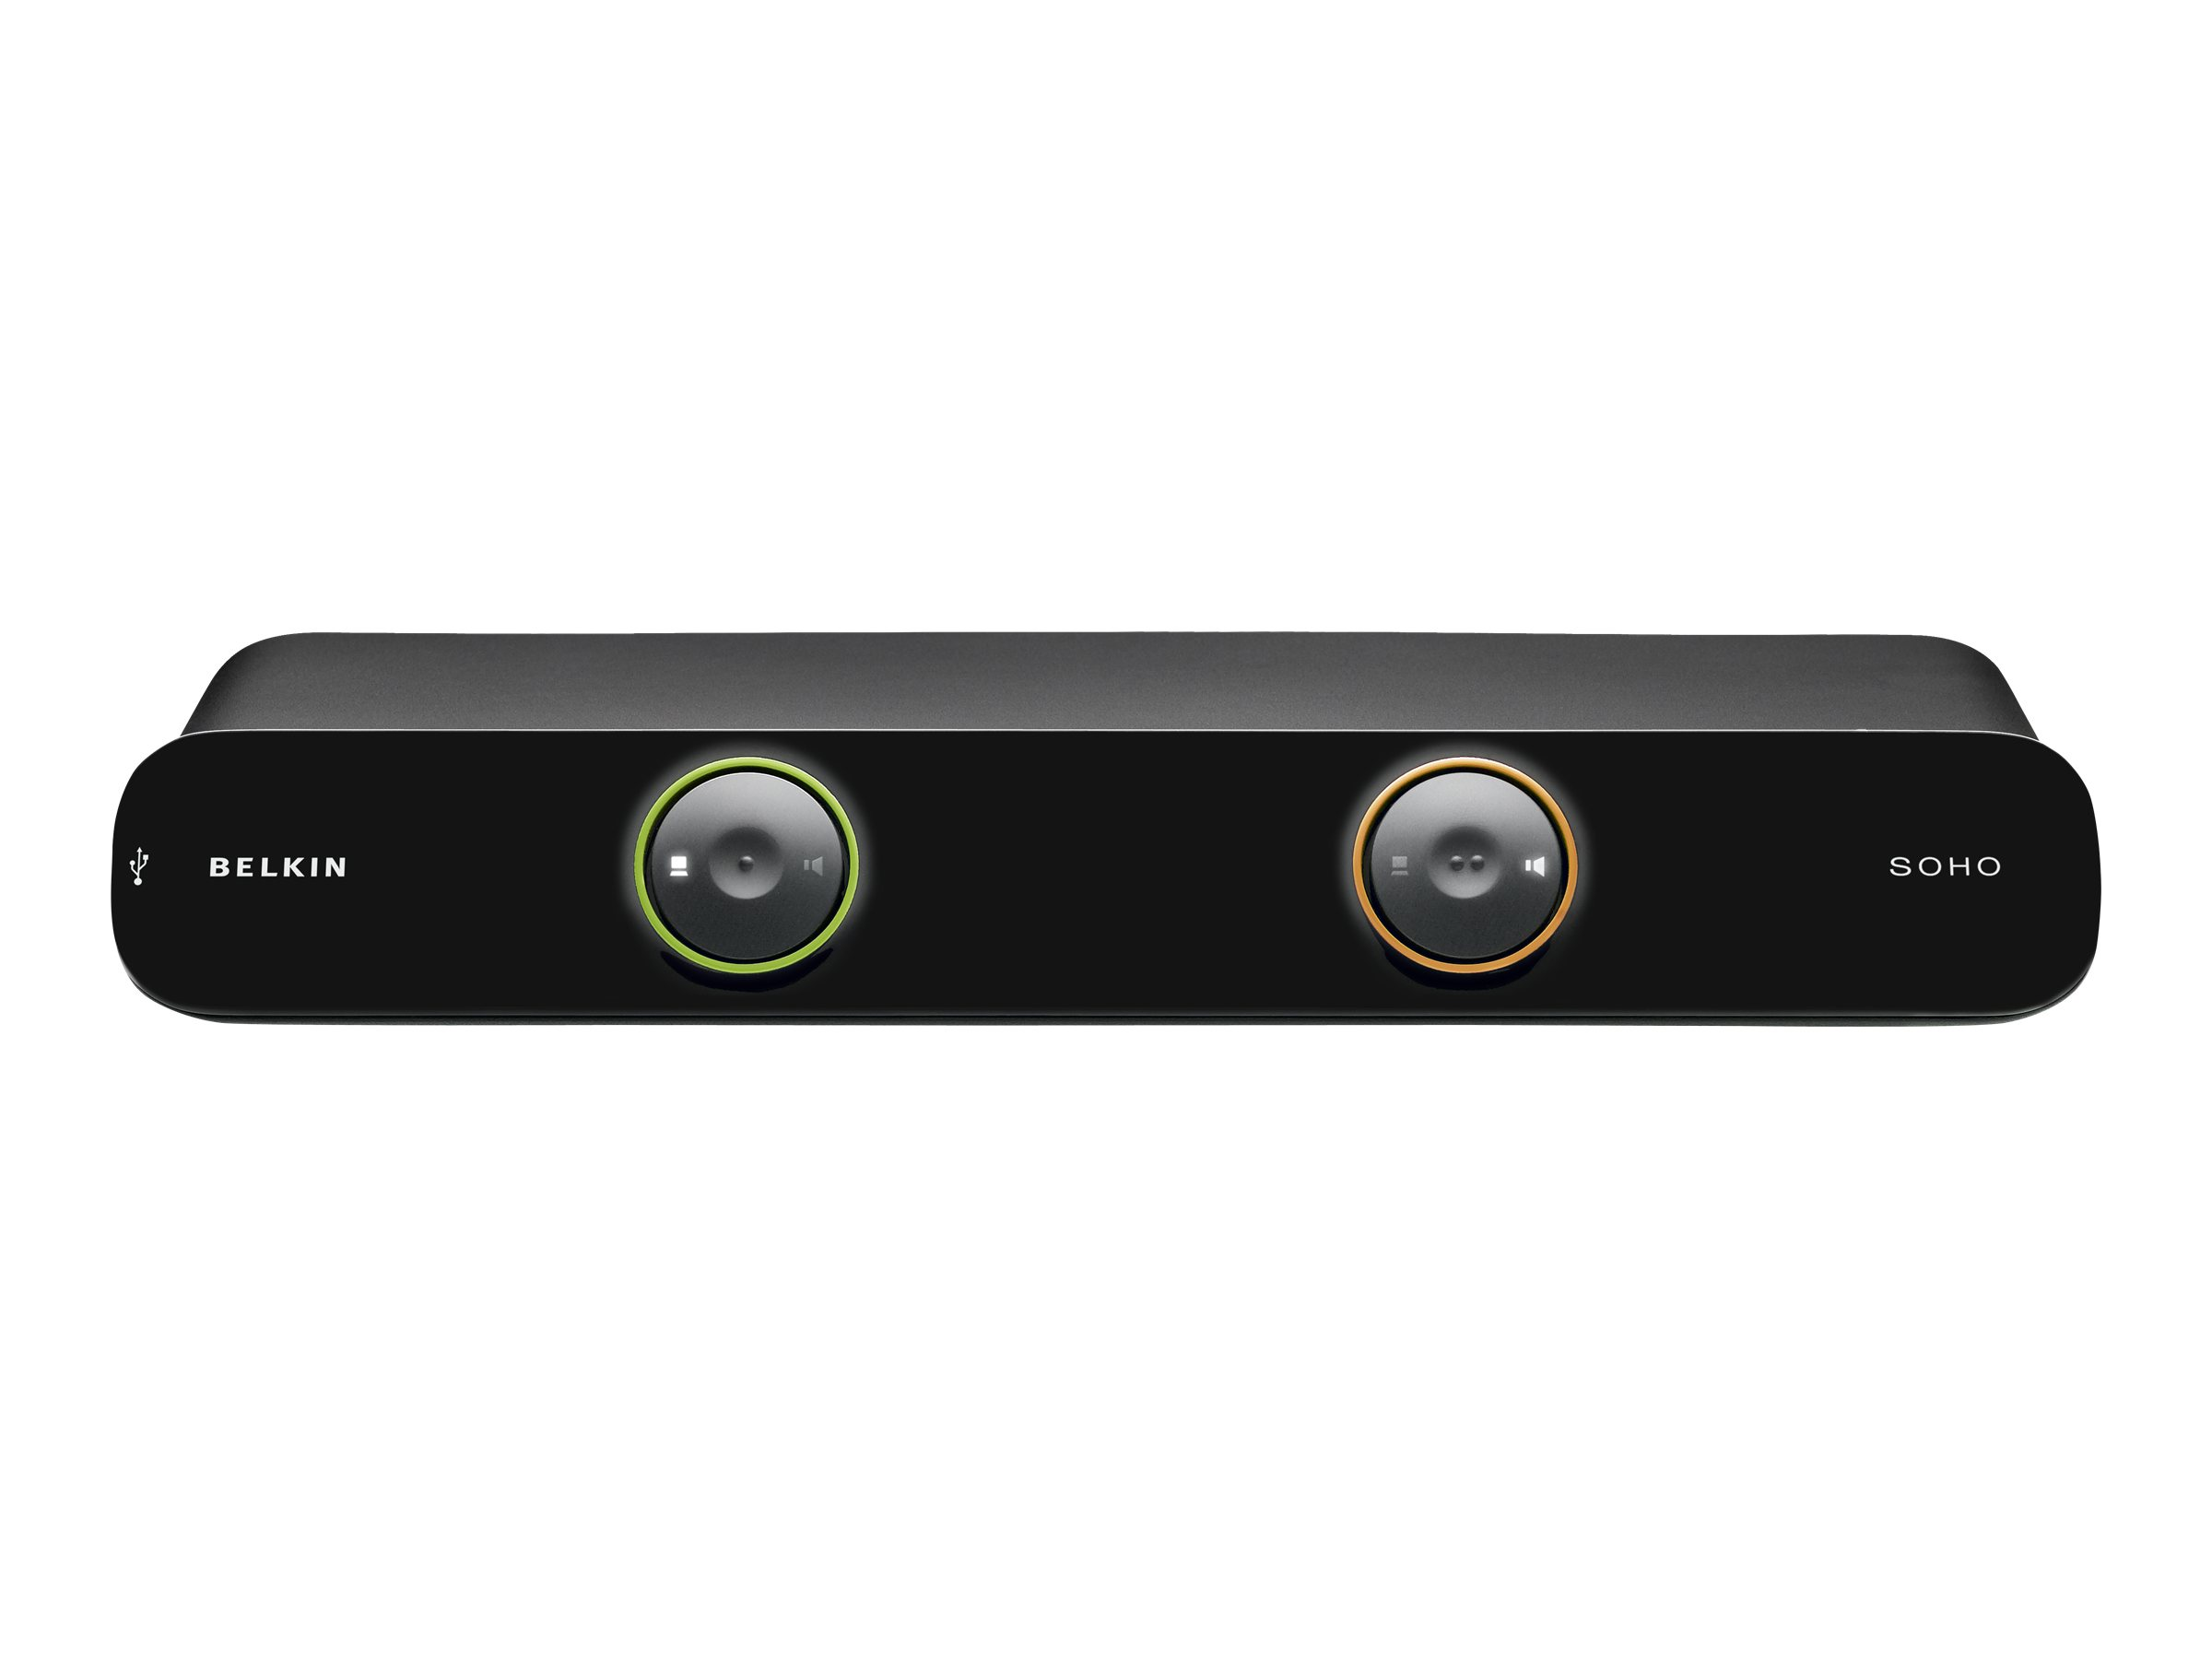 Belkin SOHO KVM Switch DVI & USB - KVM-/Audio-/USB-Switch - 2 x KVM/Audio/USB - 1 lokaler Benutzer - Desktop